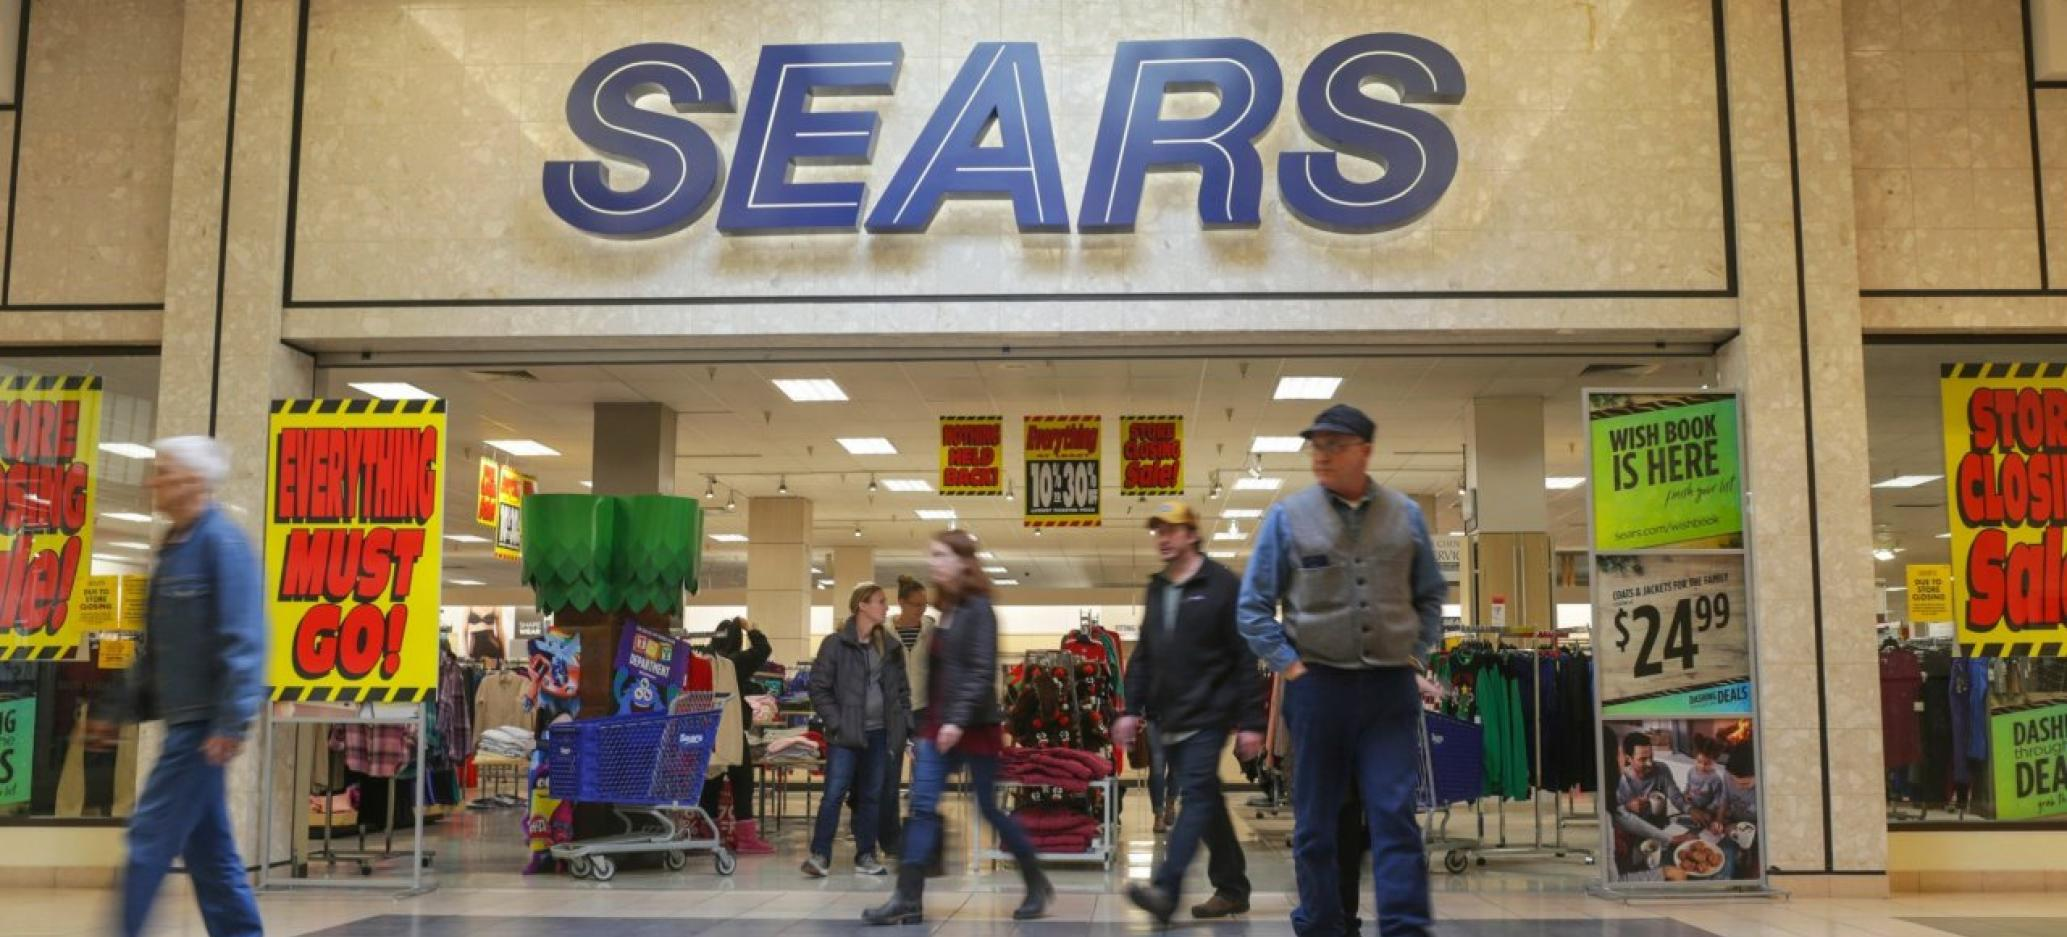 Chairman May Be Able to Keep 400 Sears Stores Open After Bankruptcy Auction